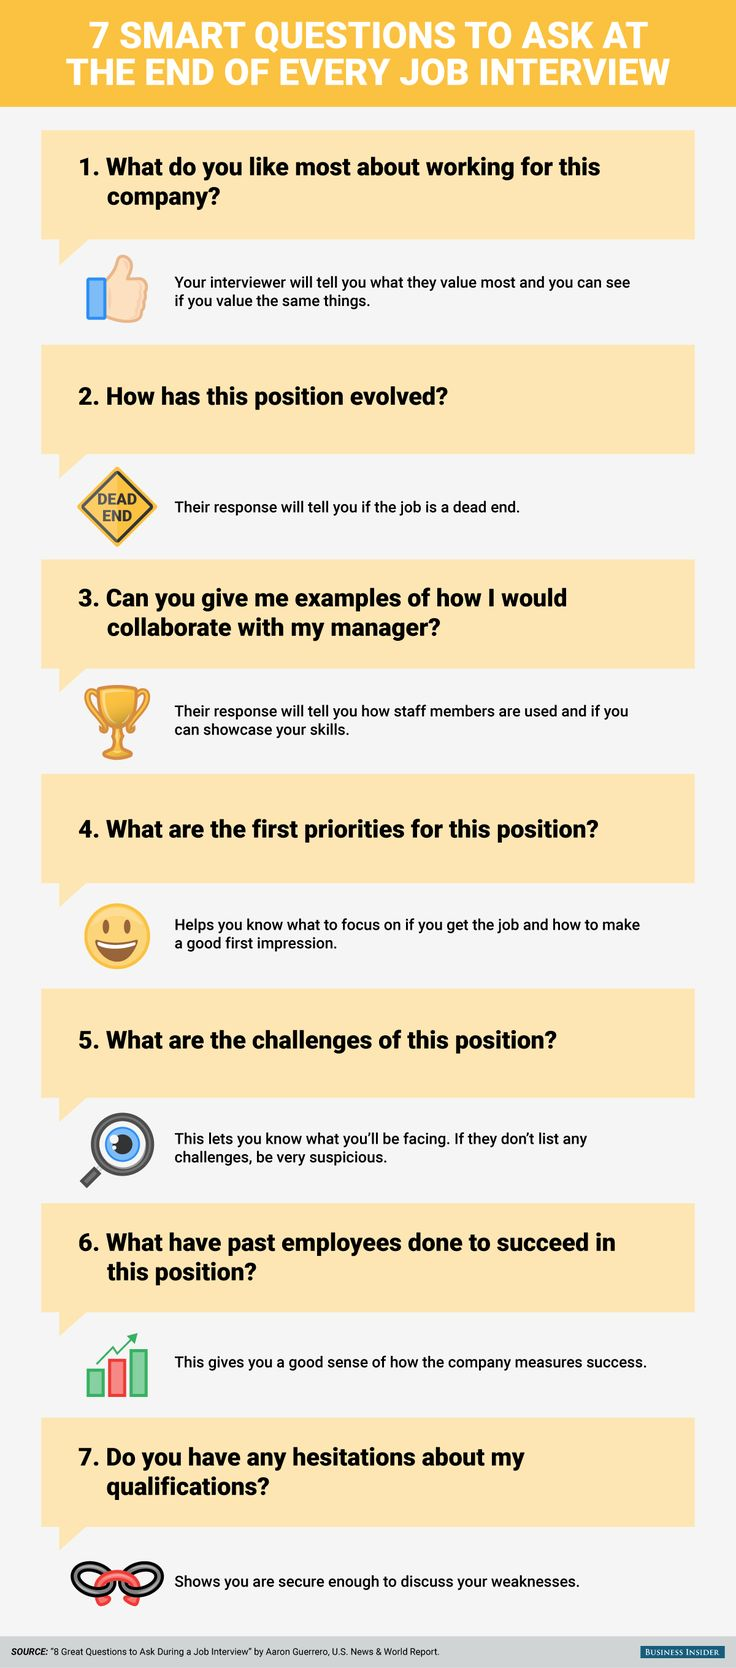 7 Smart Questions To Ask At The End Of Every Job Interview   Youu0027re In The  Hot Seat. Youu0027ve Justanswered A Dozen Questions About Yourself And  Successfully ...